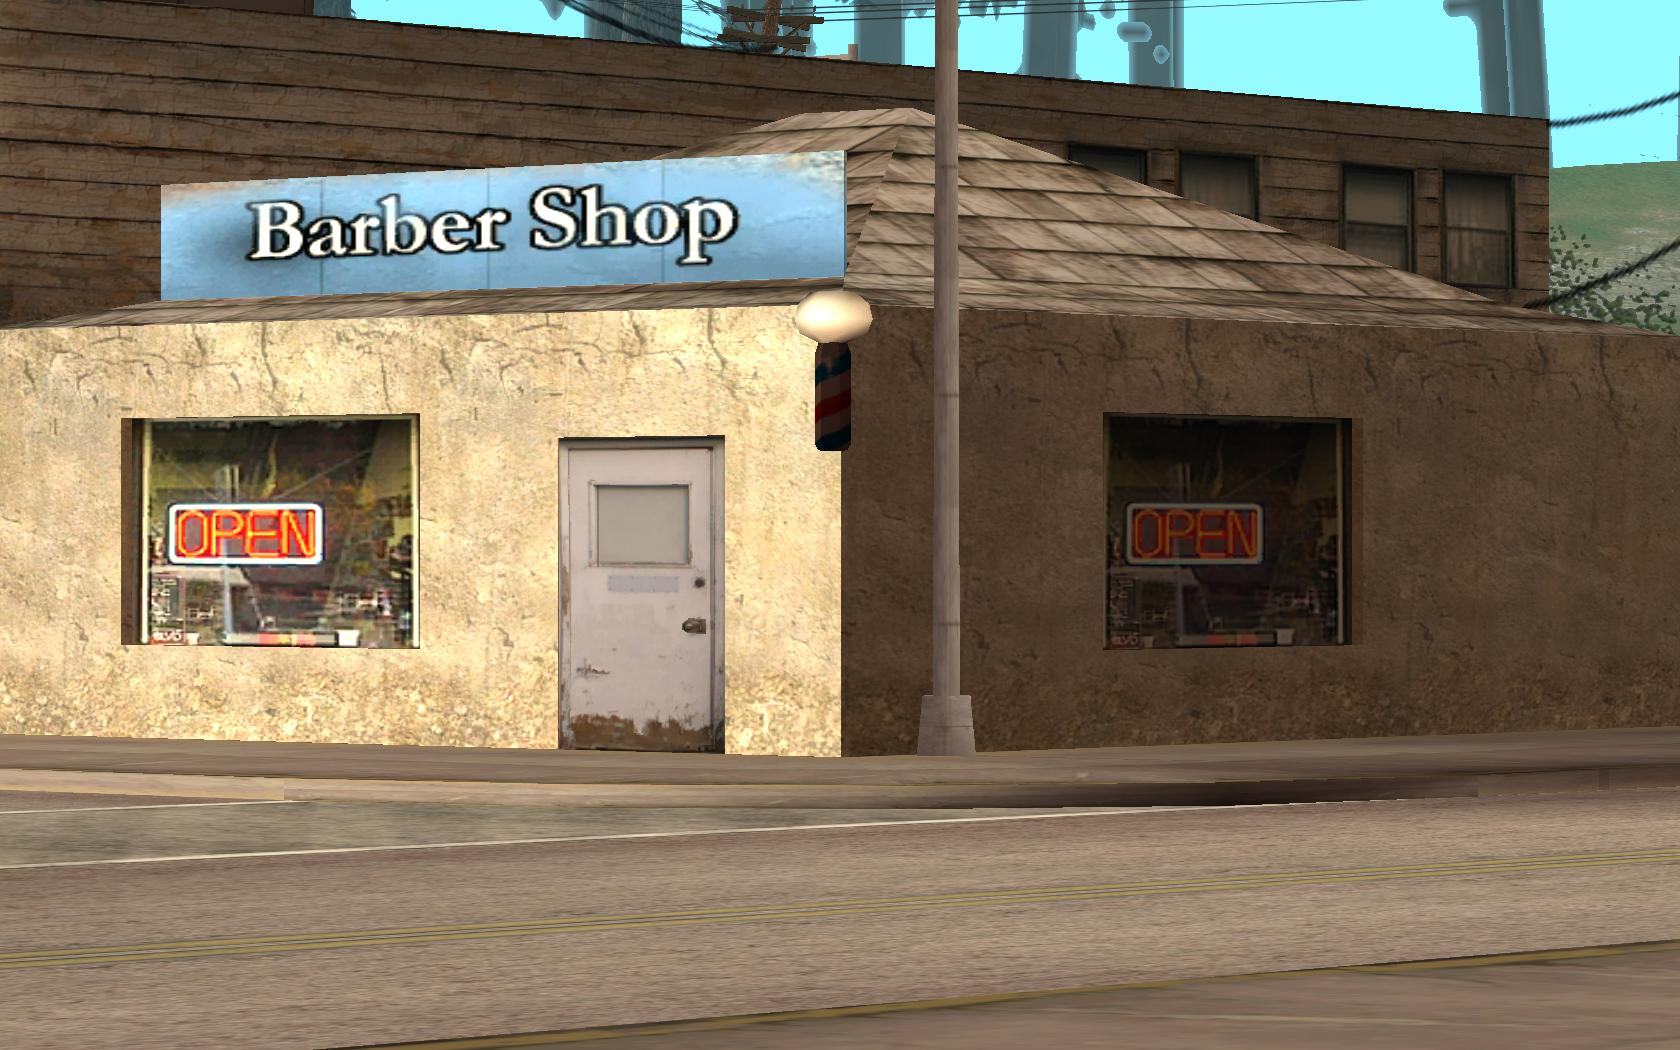 Barber Shop (Dillimore)